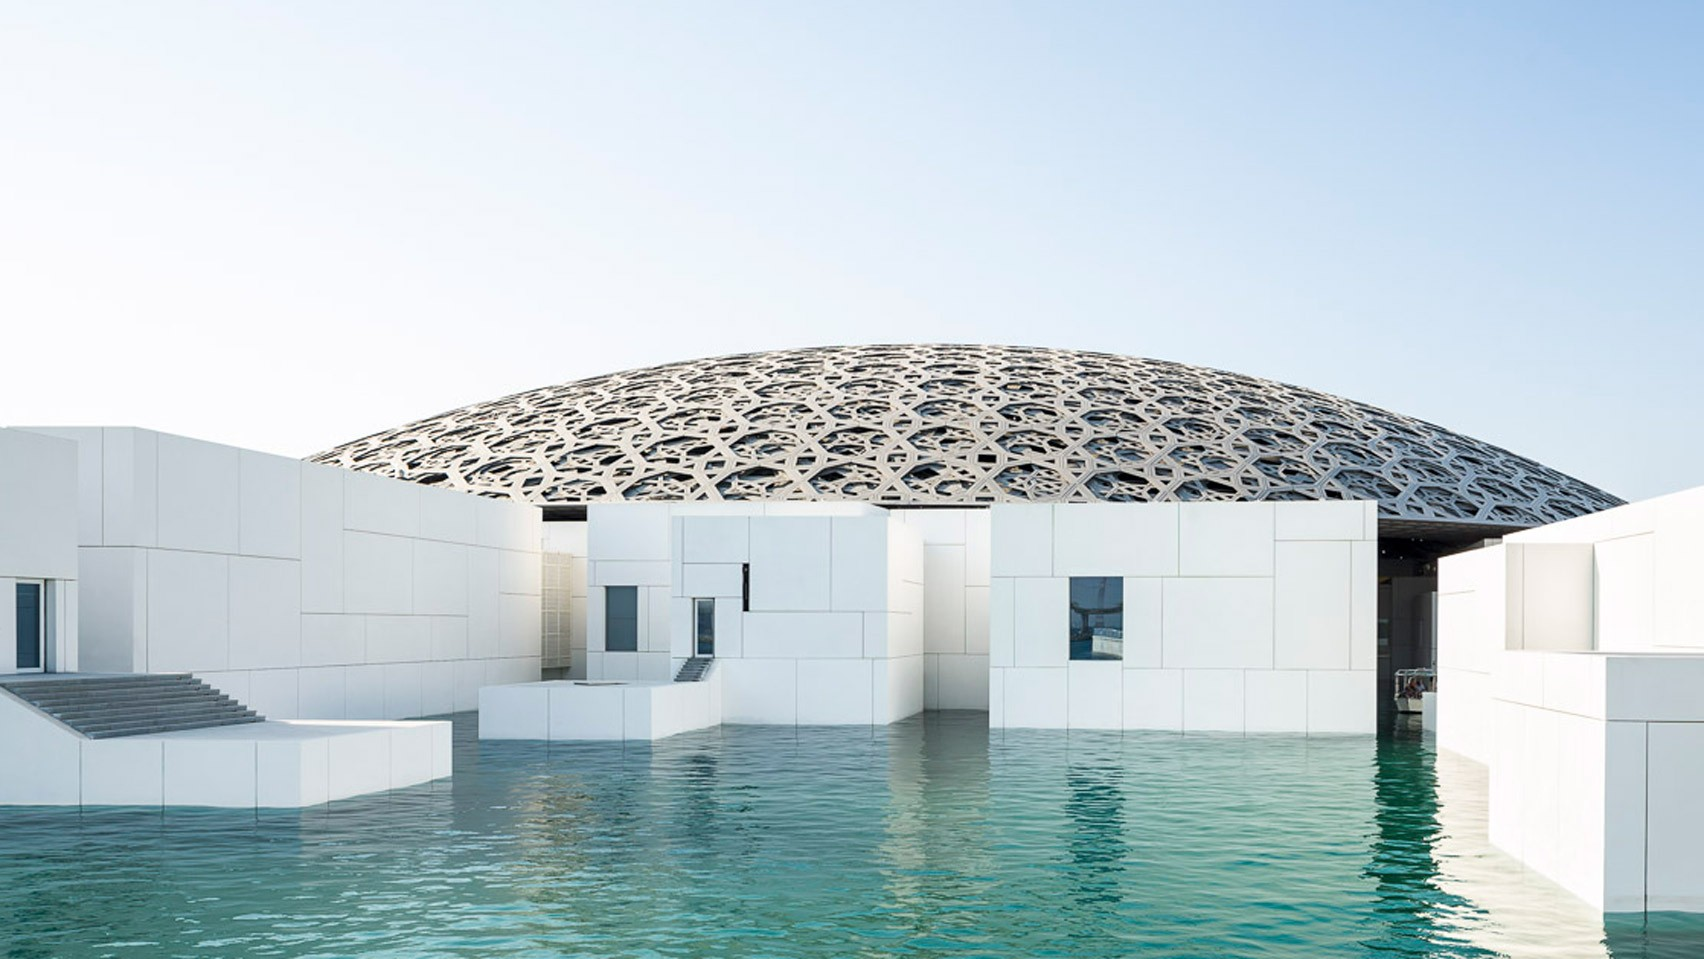 louvre-abu-dhabi-jean-nouvel-architecture-cultural-museums-photography-dezeen-hero-1.jpg